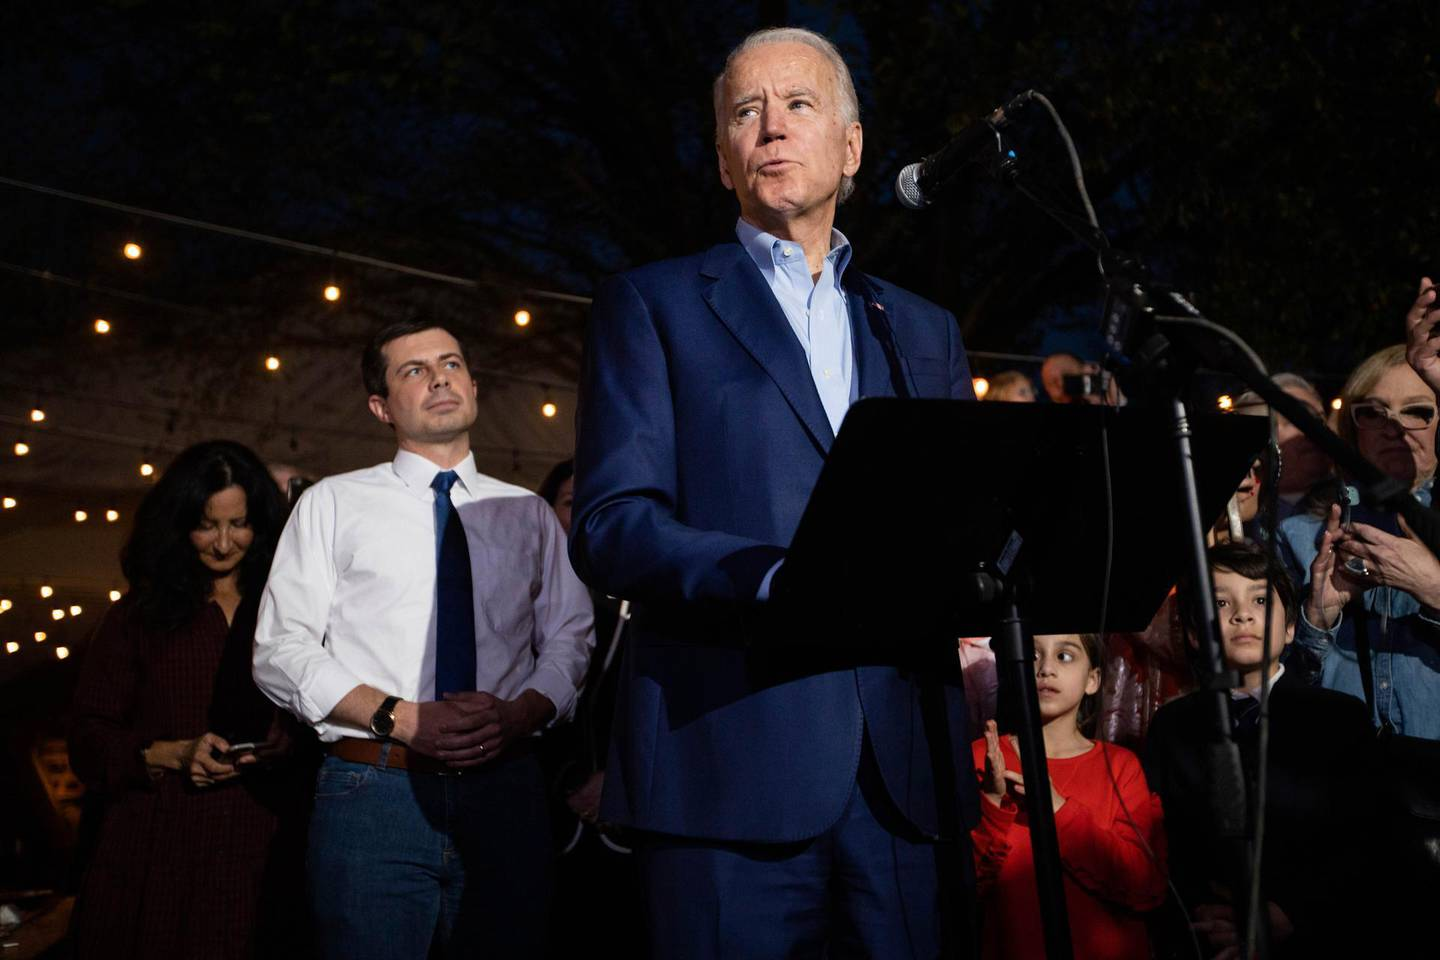 Democratic presidential primary candidate, former Vice President Joe Biden speaks during an event at the Chicken Scratch restaurant the night before Super Tuesday primary voting, on Monday night March 2, 2020 in Dallas. Former Democratic presidential primary candidate Pete Buttigieg, center left, was there to endorse Biden after he stopped his campaign Sunday. (Juan Figueroa/The Dallas Morning News via AP)